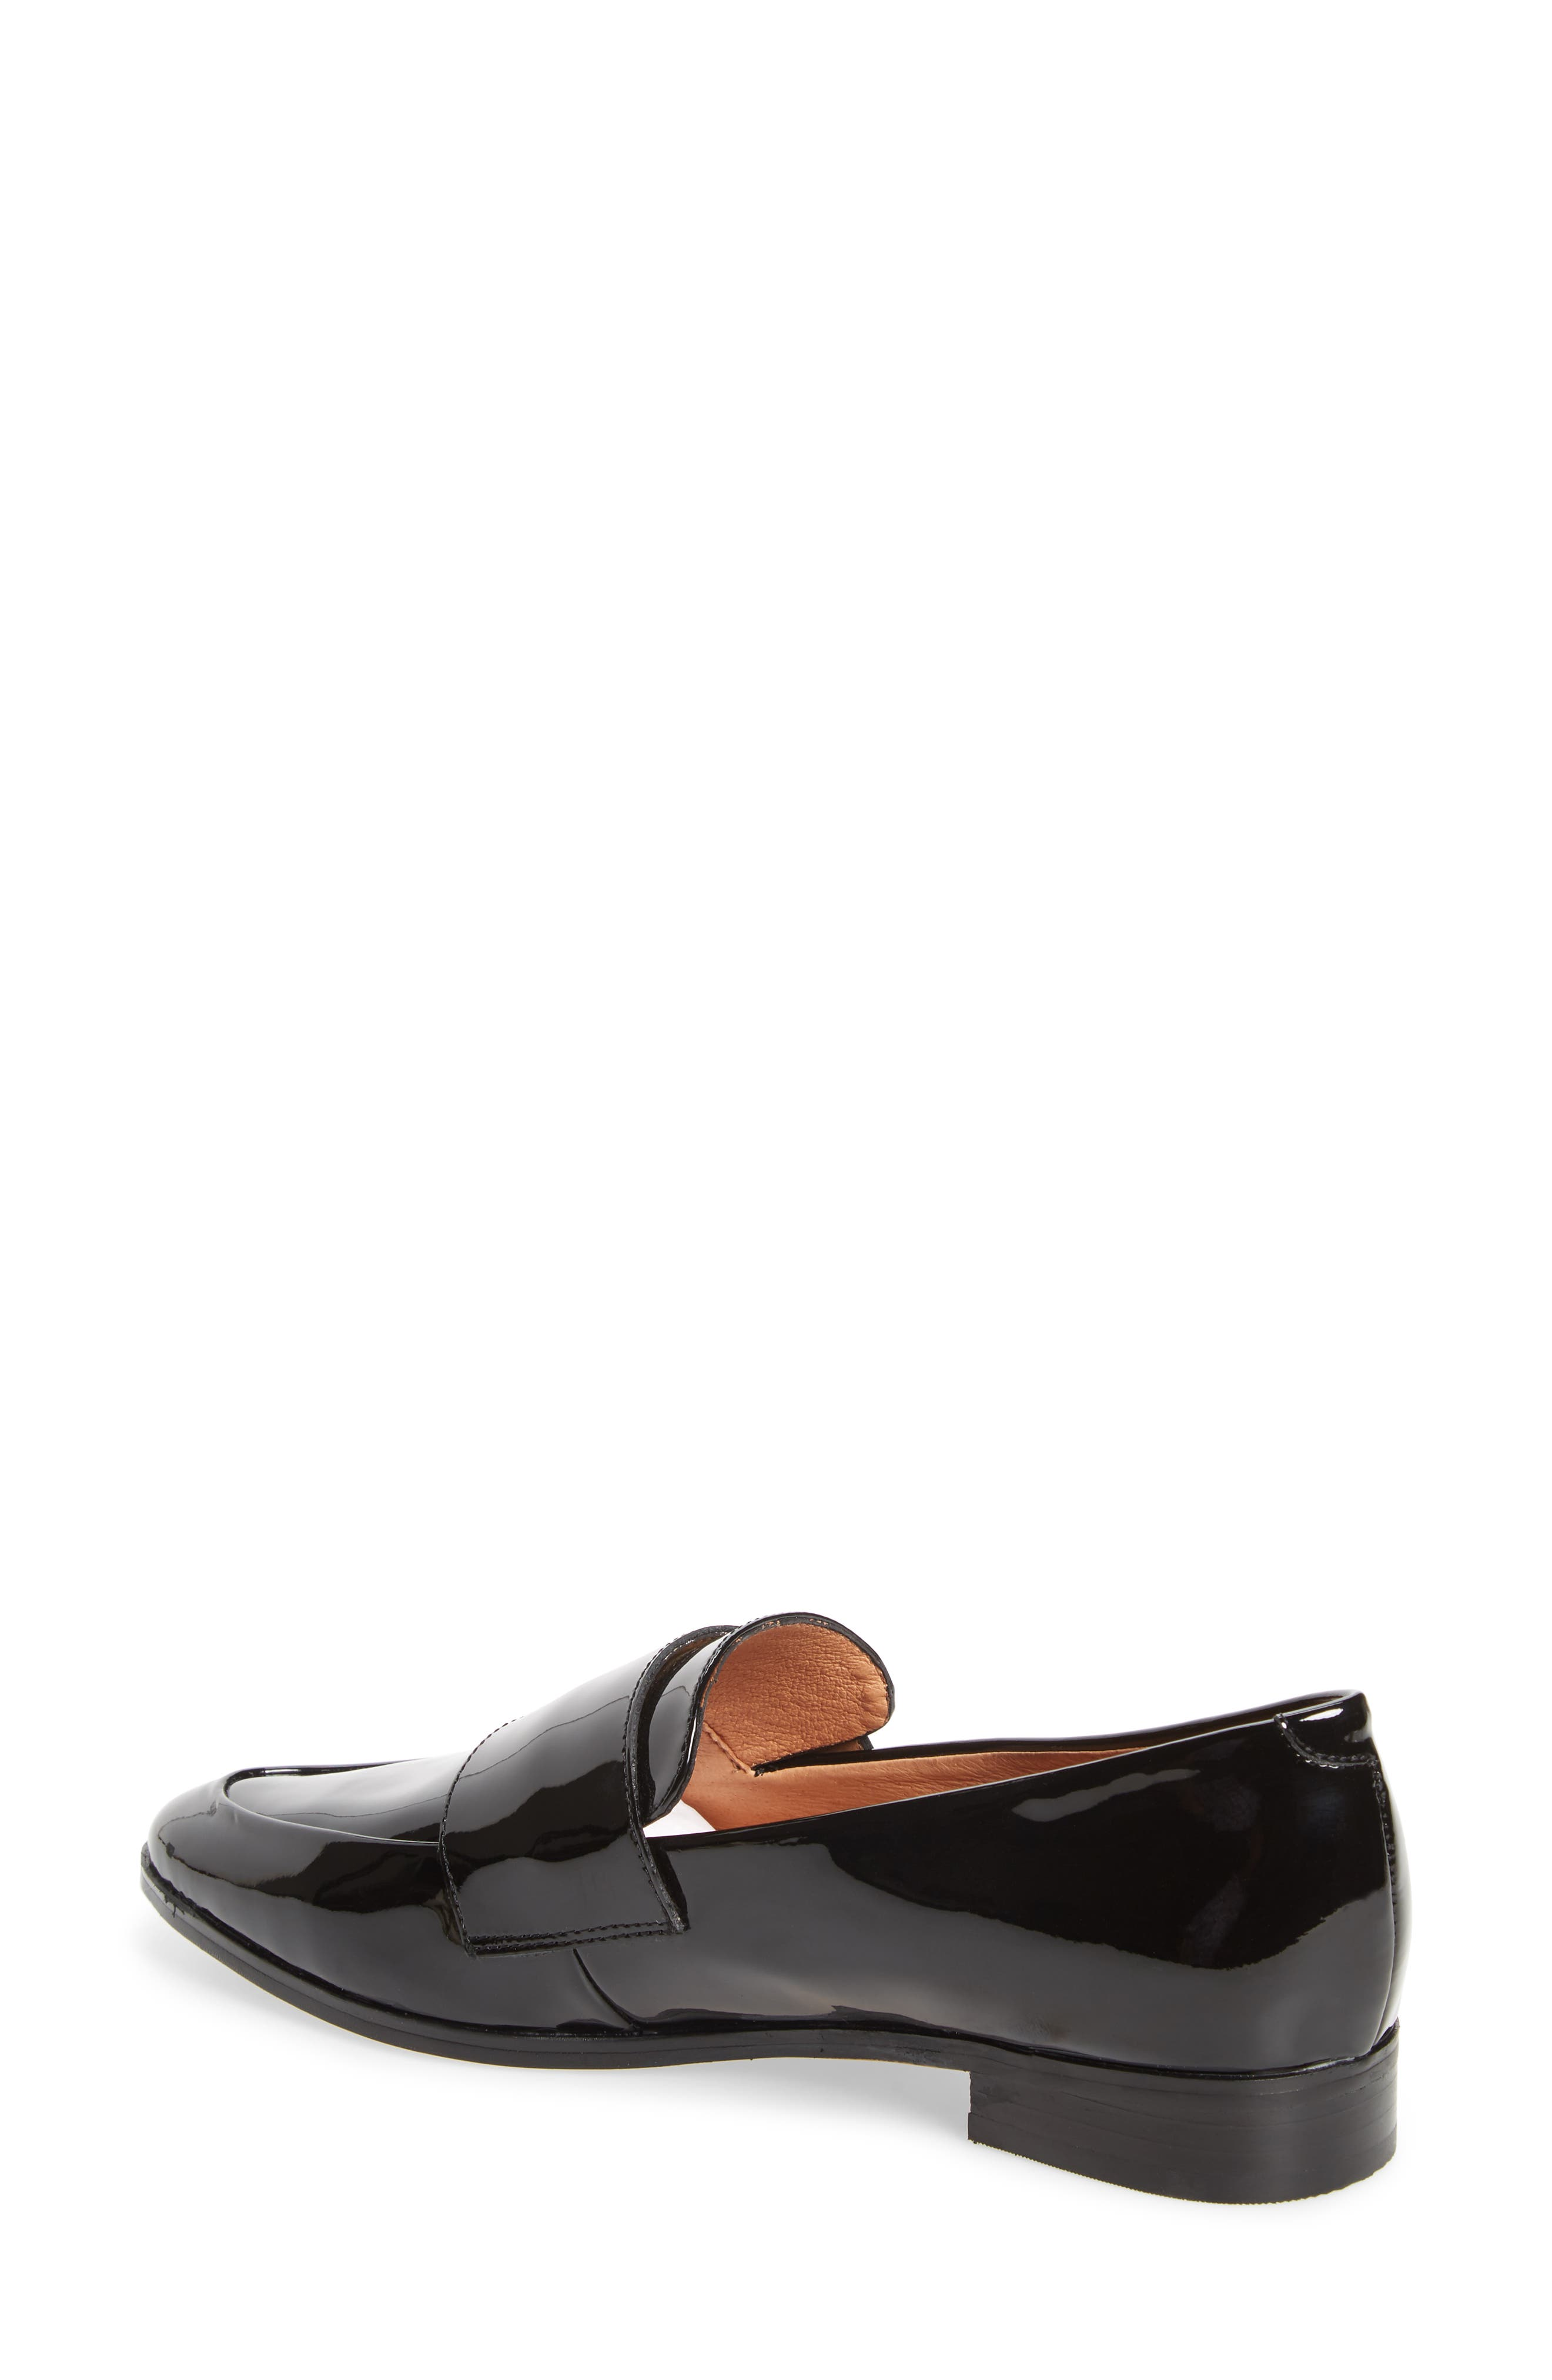 Emilia Loafer,                             Alternate thumbnail 2, color,                             BLACK PATENT LEATHER